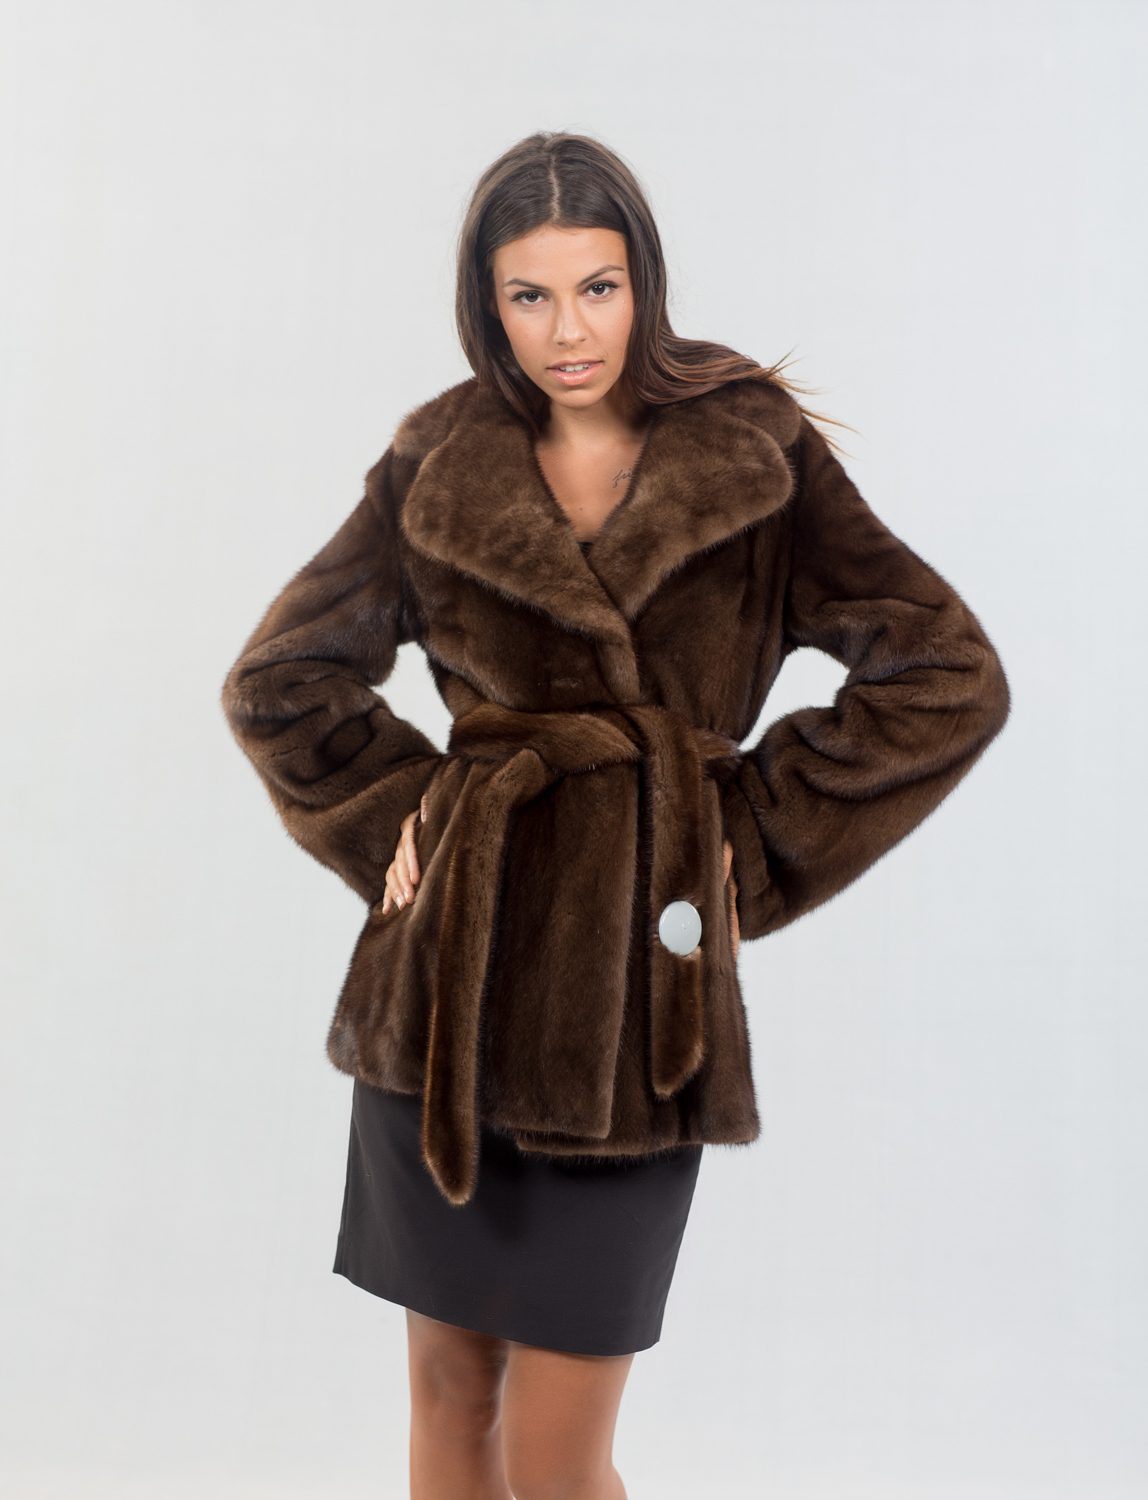 Mink Male Sc. Brown Fur Jacket. 100% Real Fur Coats and Accessories.